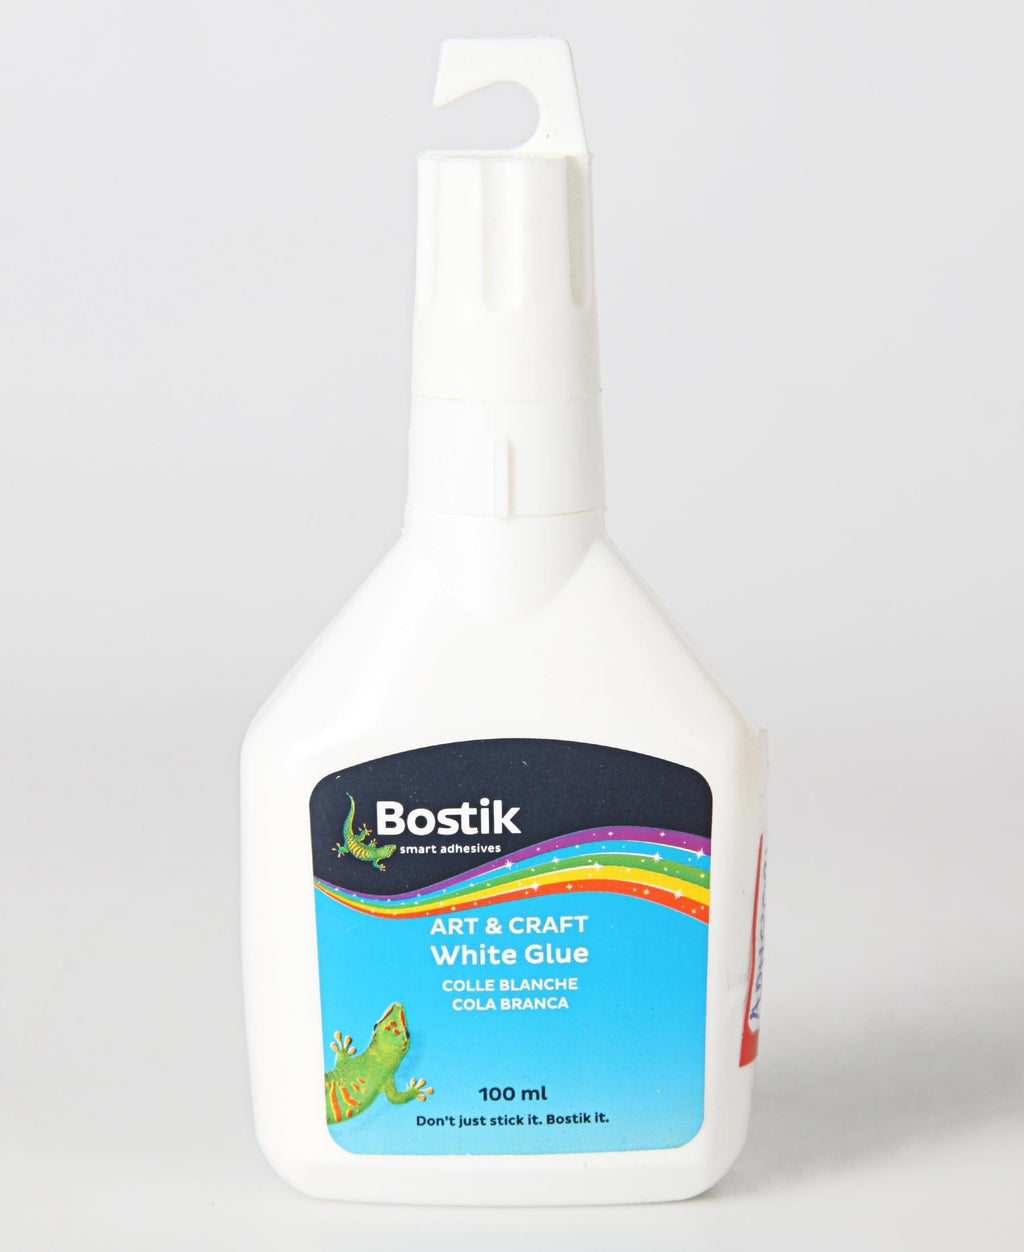 Bostik 100Ml Art And Craft Glue - White